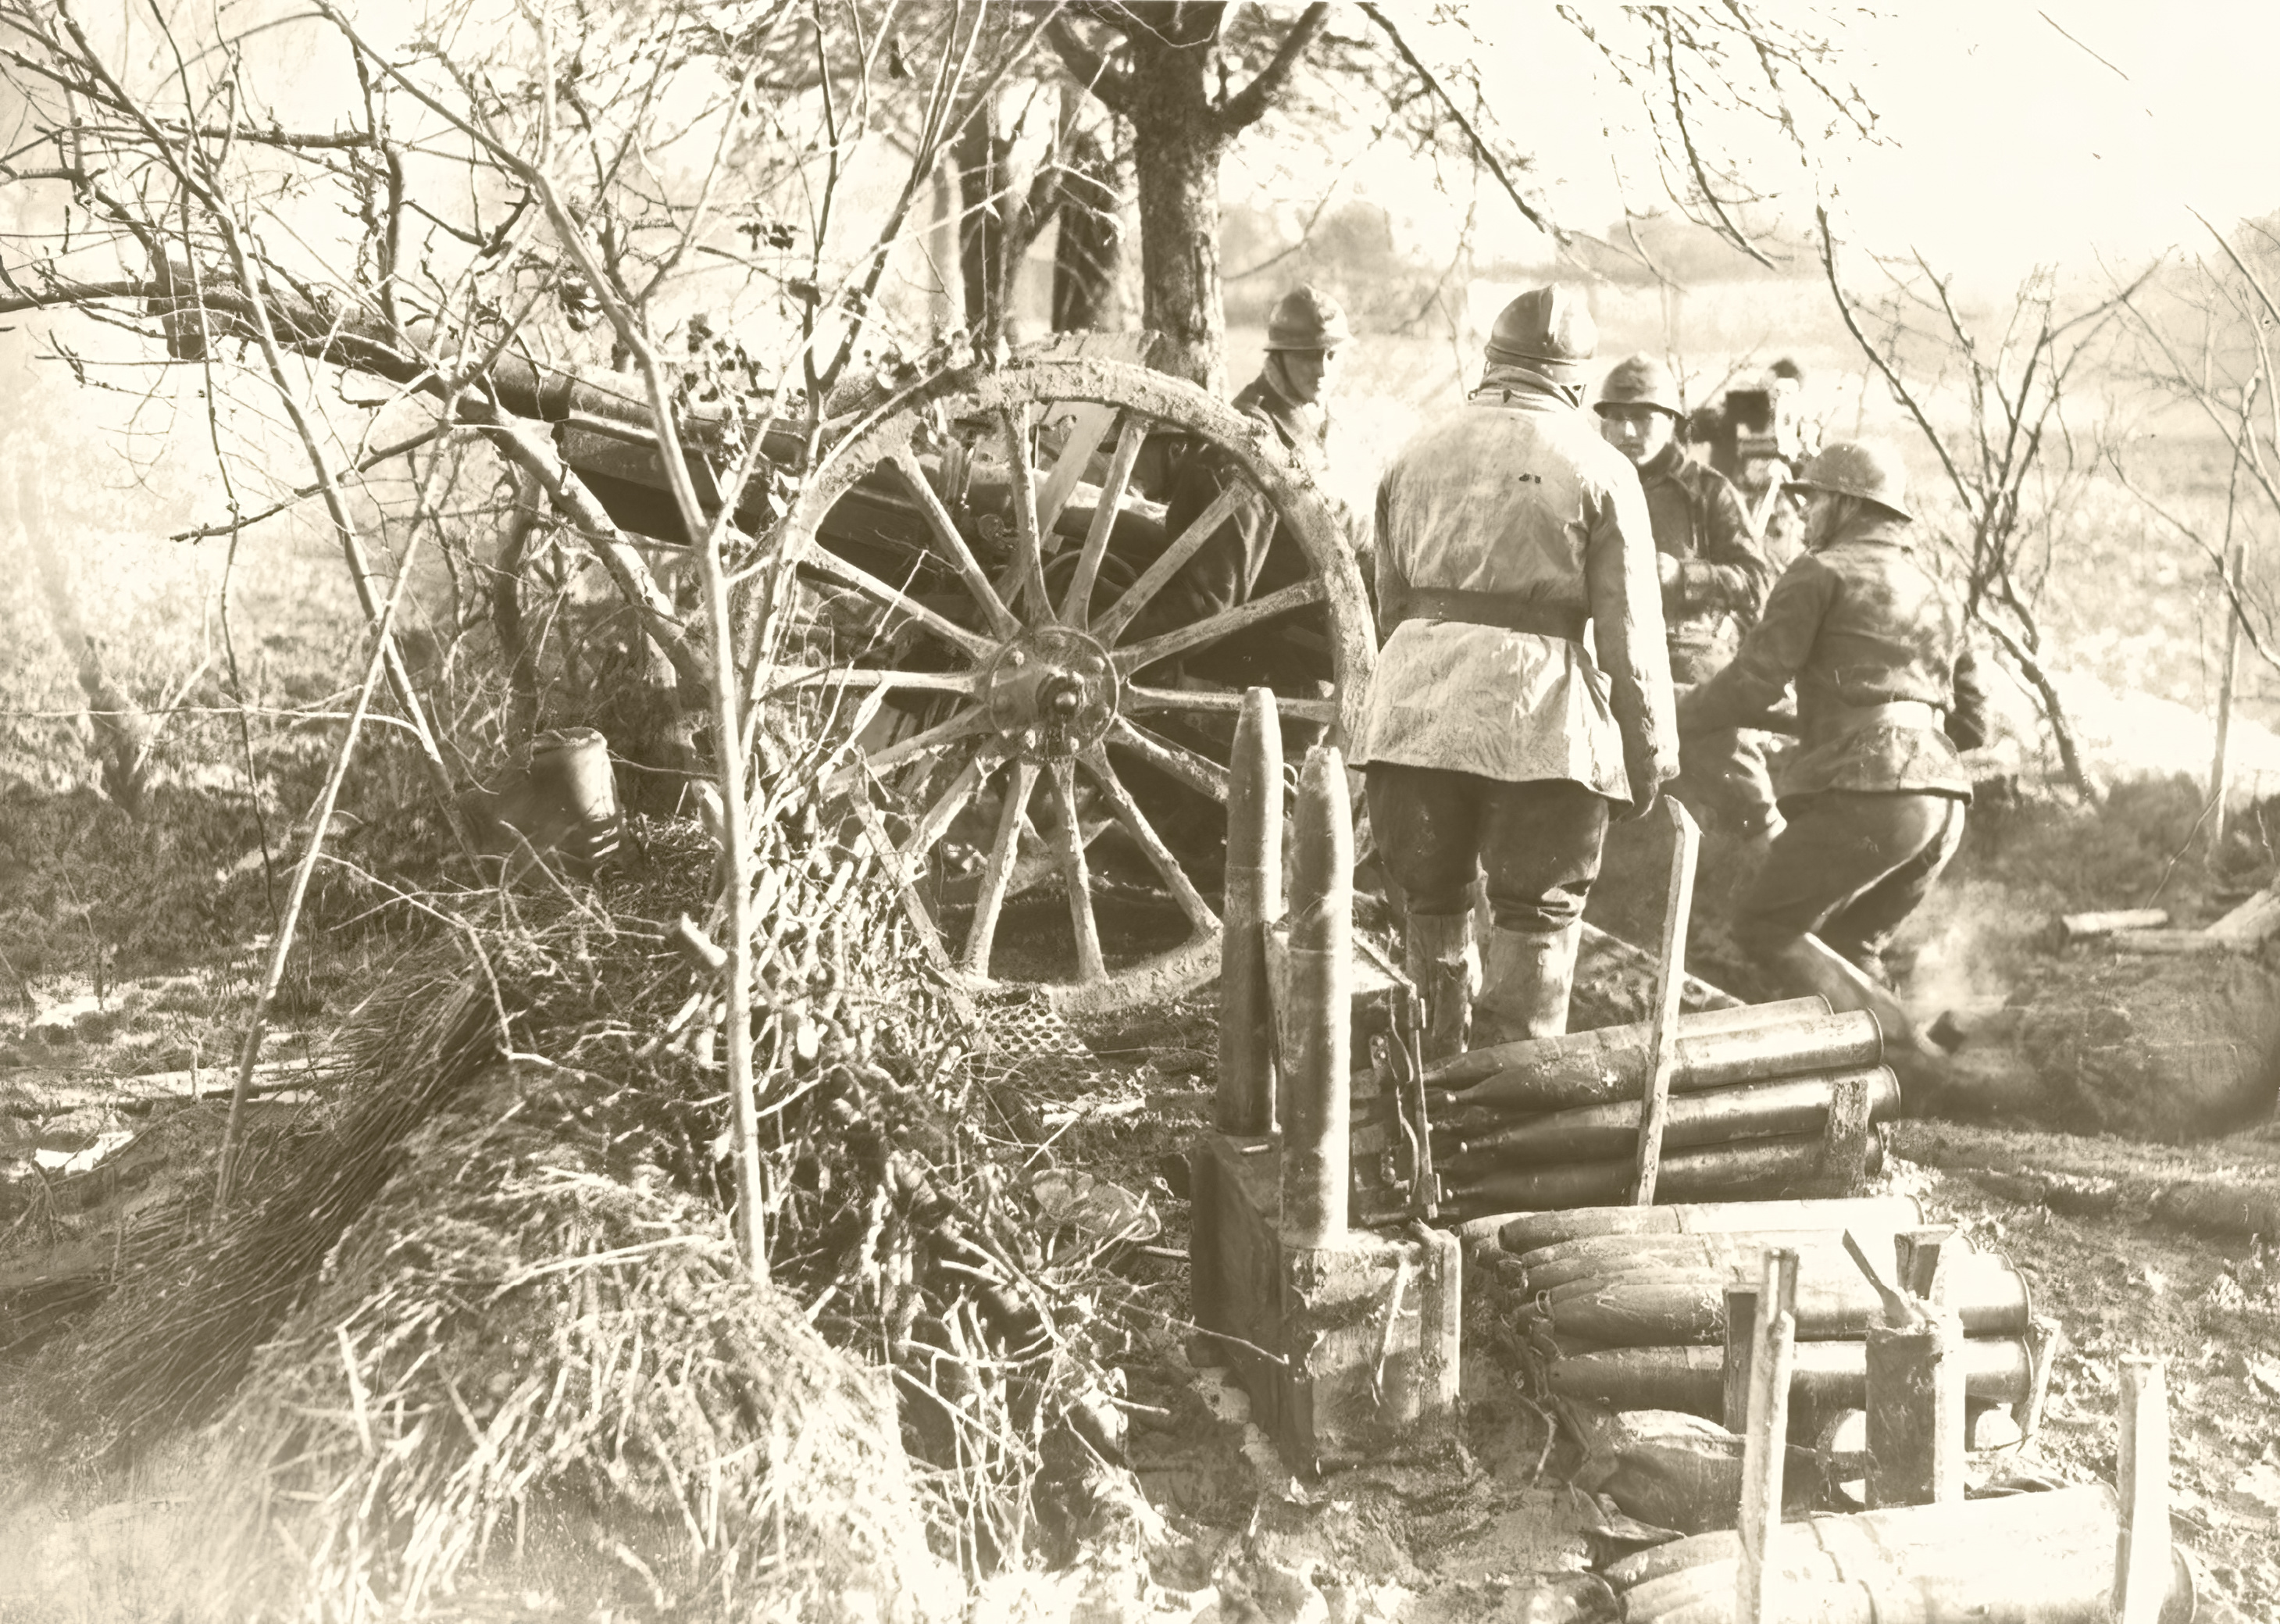 French Army manoeuvre a 75mm battery during the phoney war 14th Dec 1939 NIOD